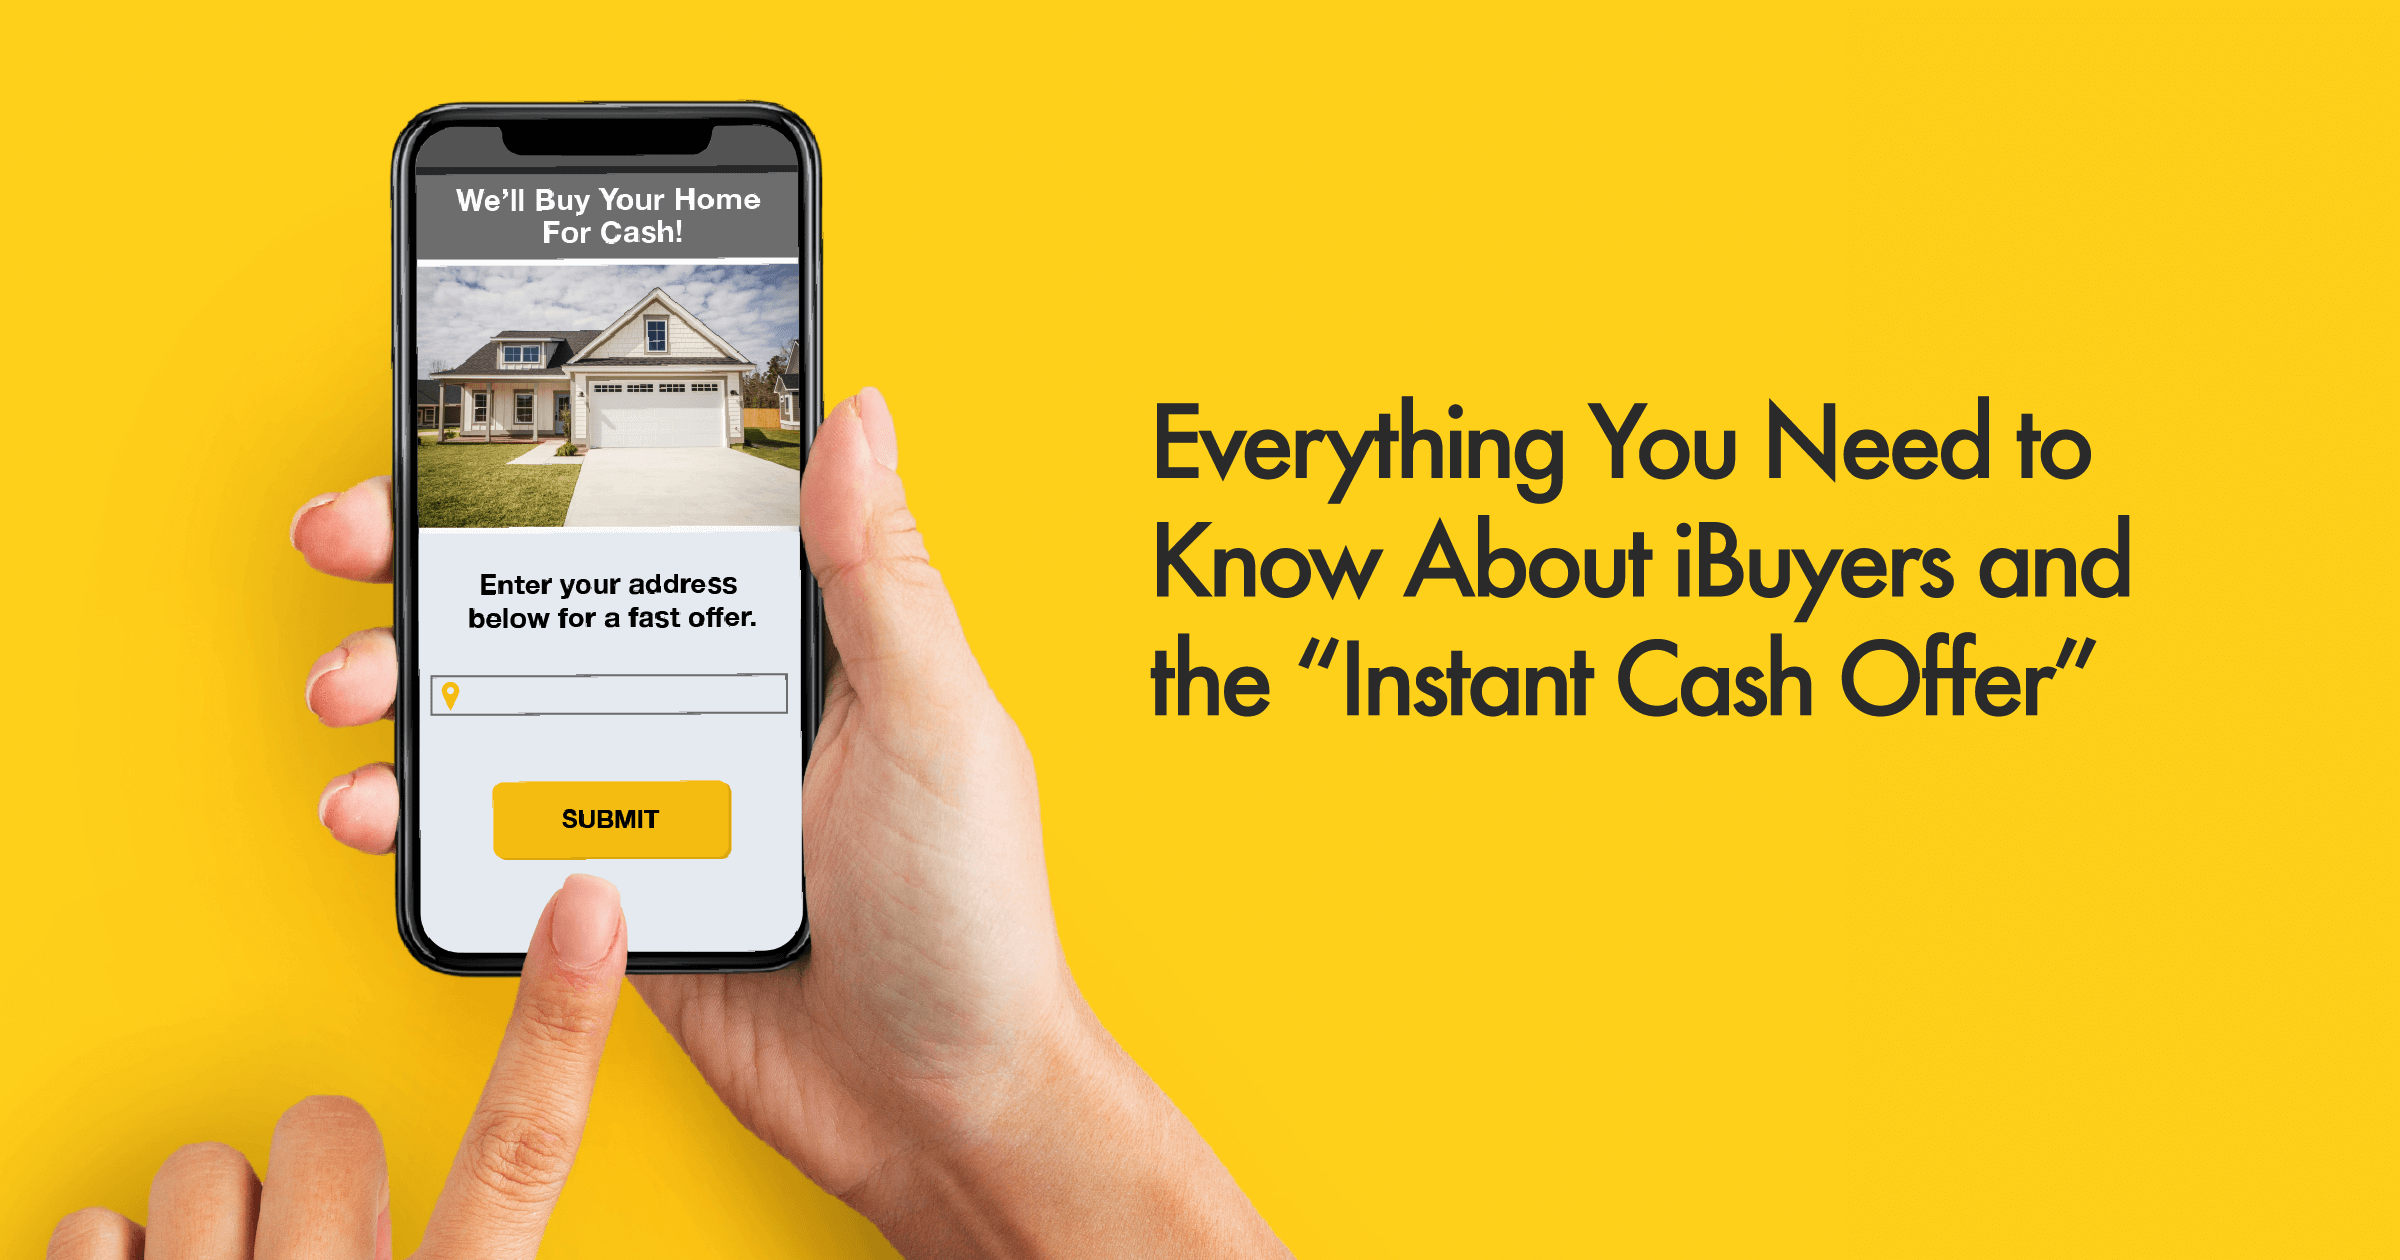 iBuyers and Instant Cash Offers